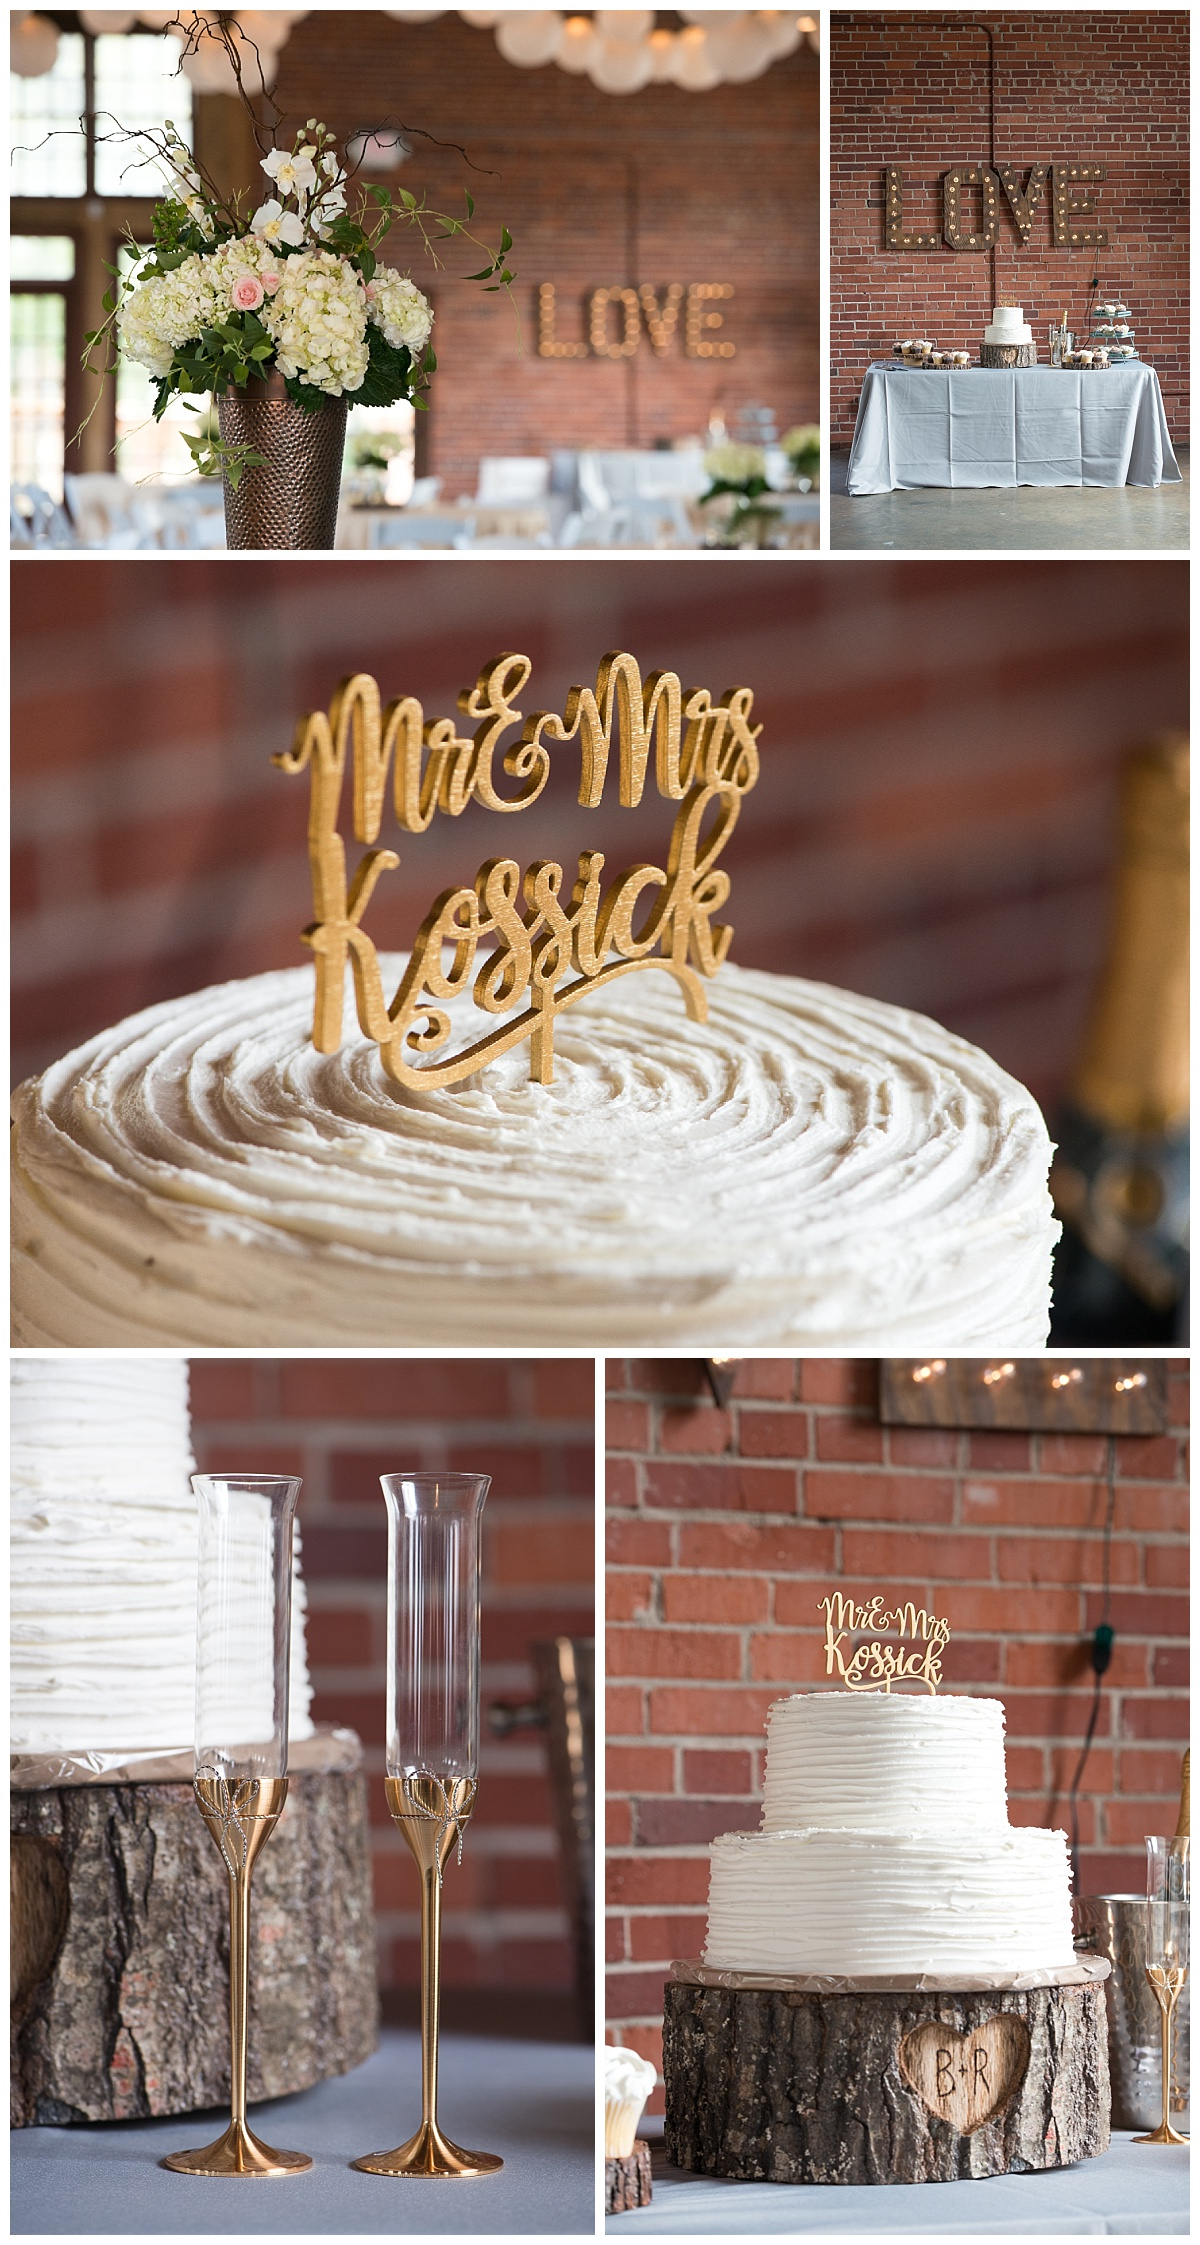 Rustic cake topper and gold champagne glasses